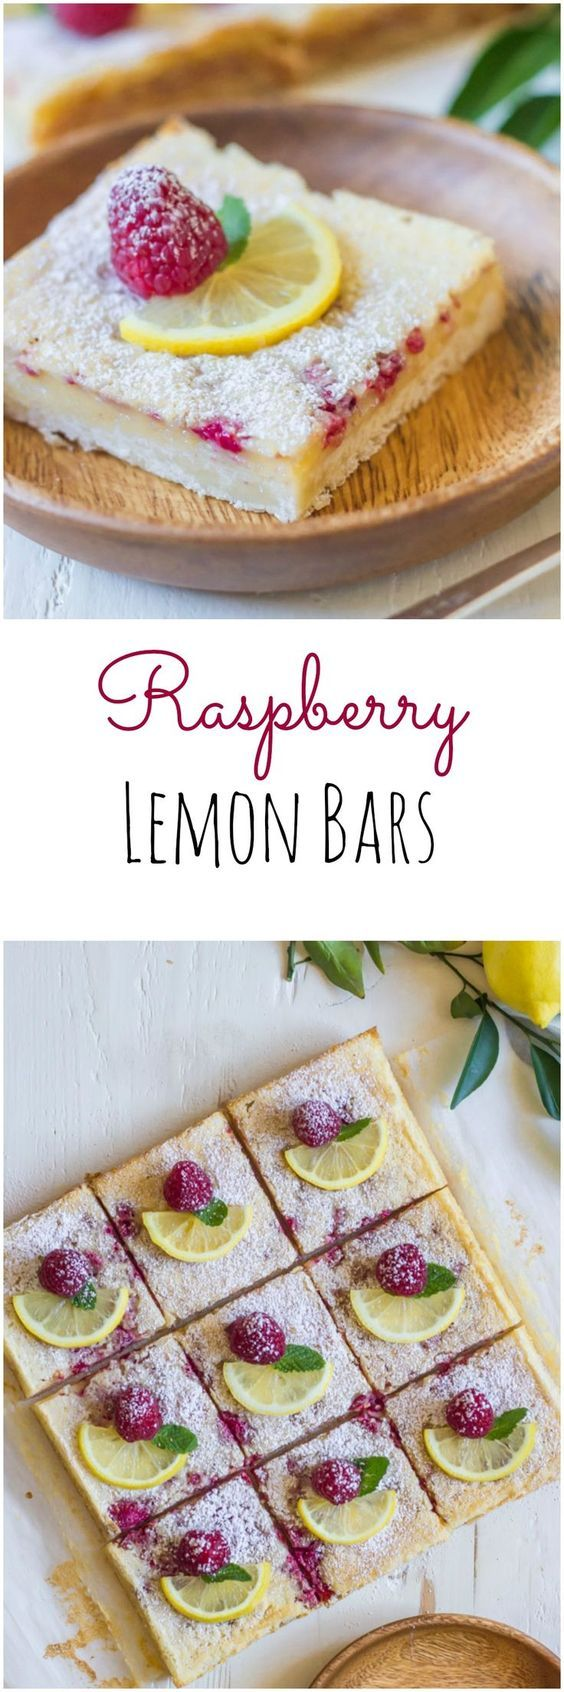 Fresh raspberries are whisked into a sweet and tart lemon filling - all on top of a thick buttery shortbread crust!